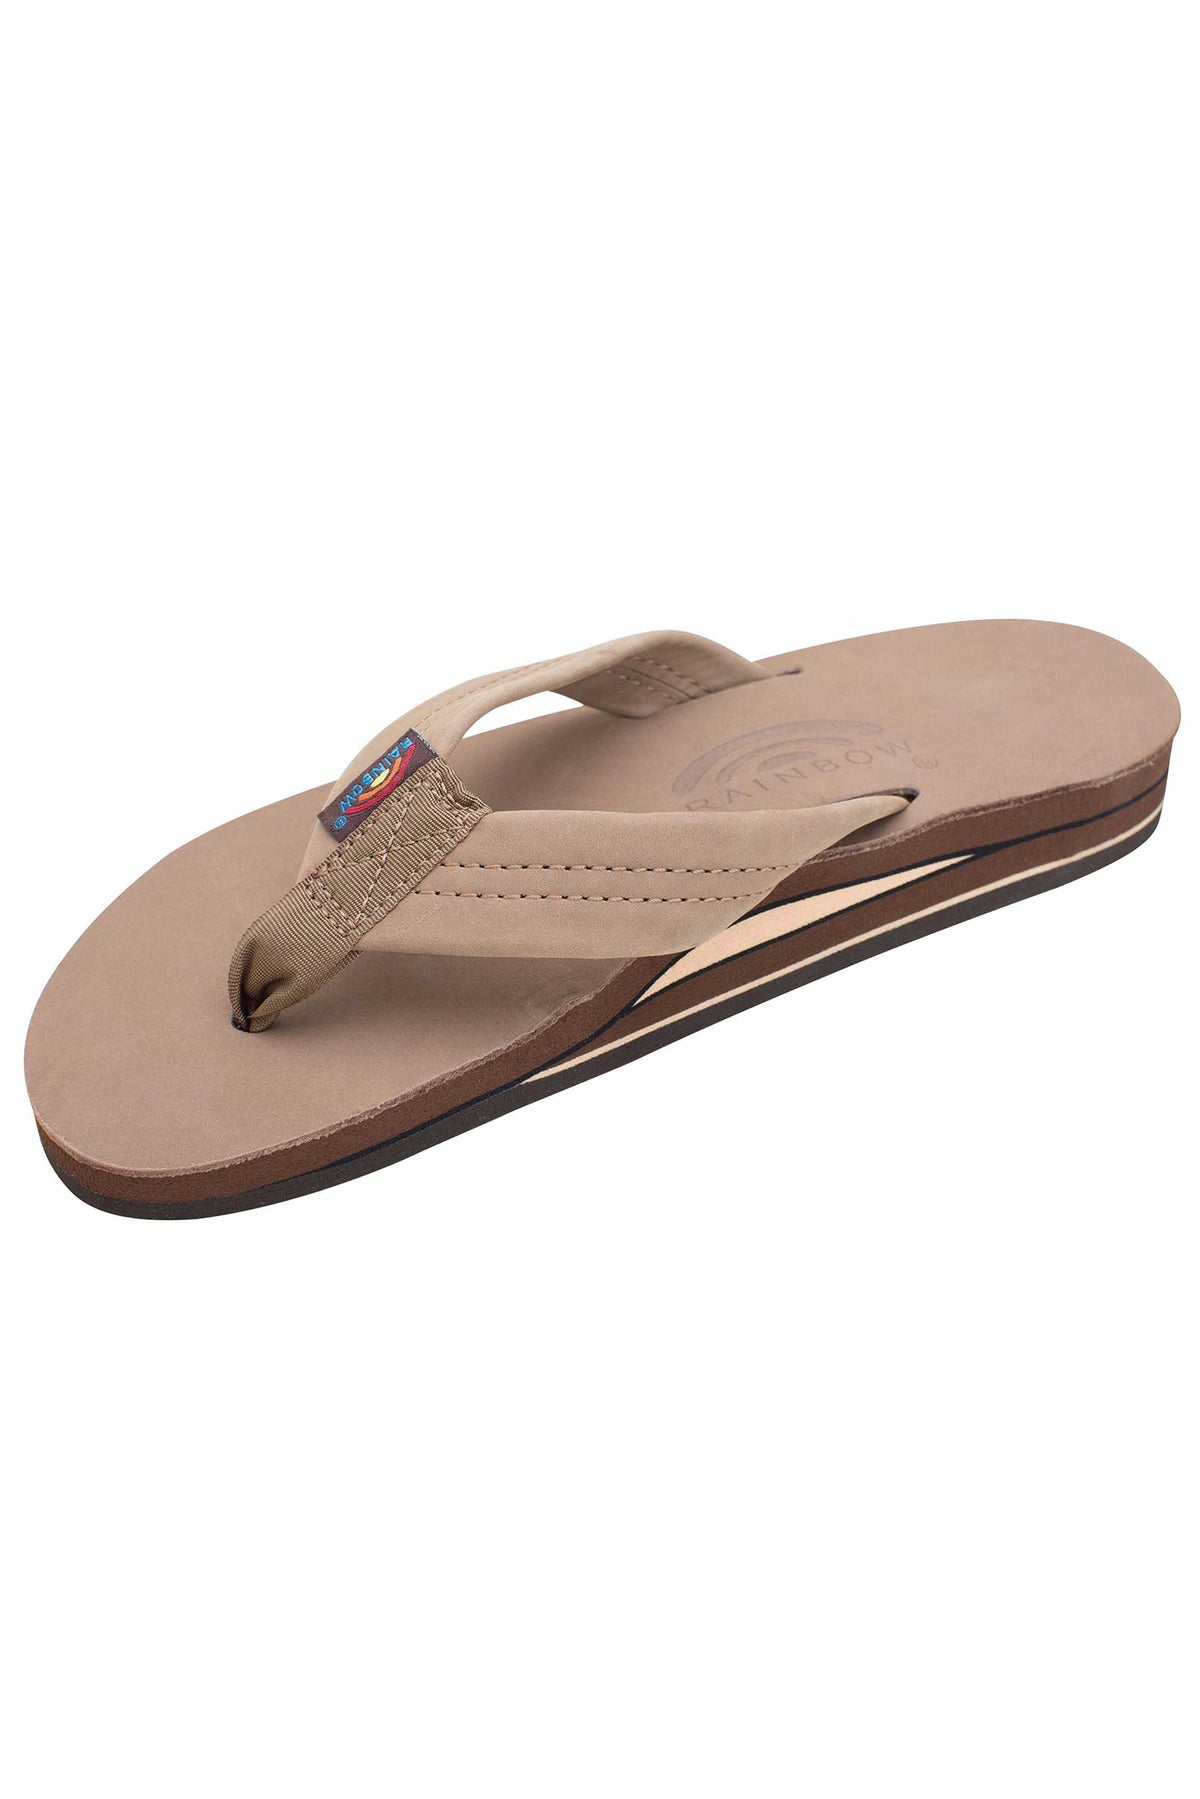 Womens Rainbow Sandals Premier Double Dark Brown